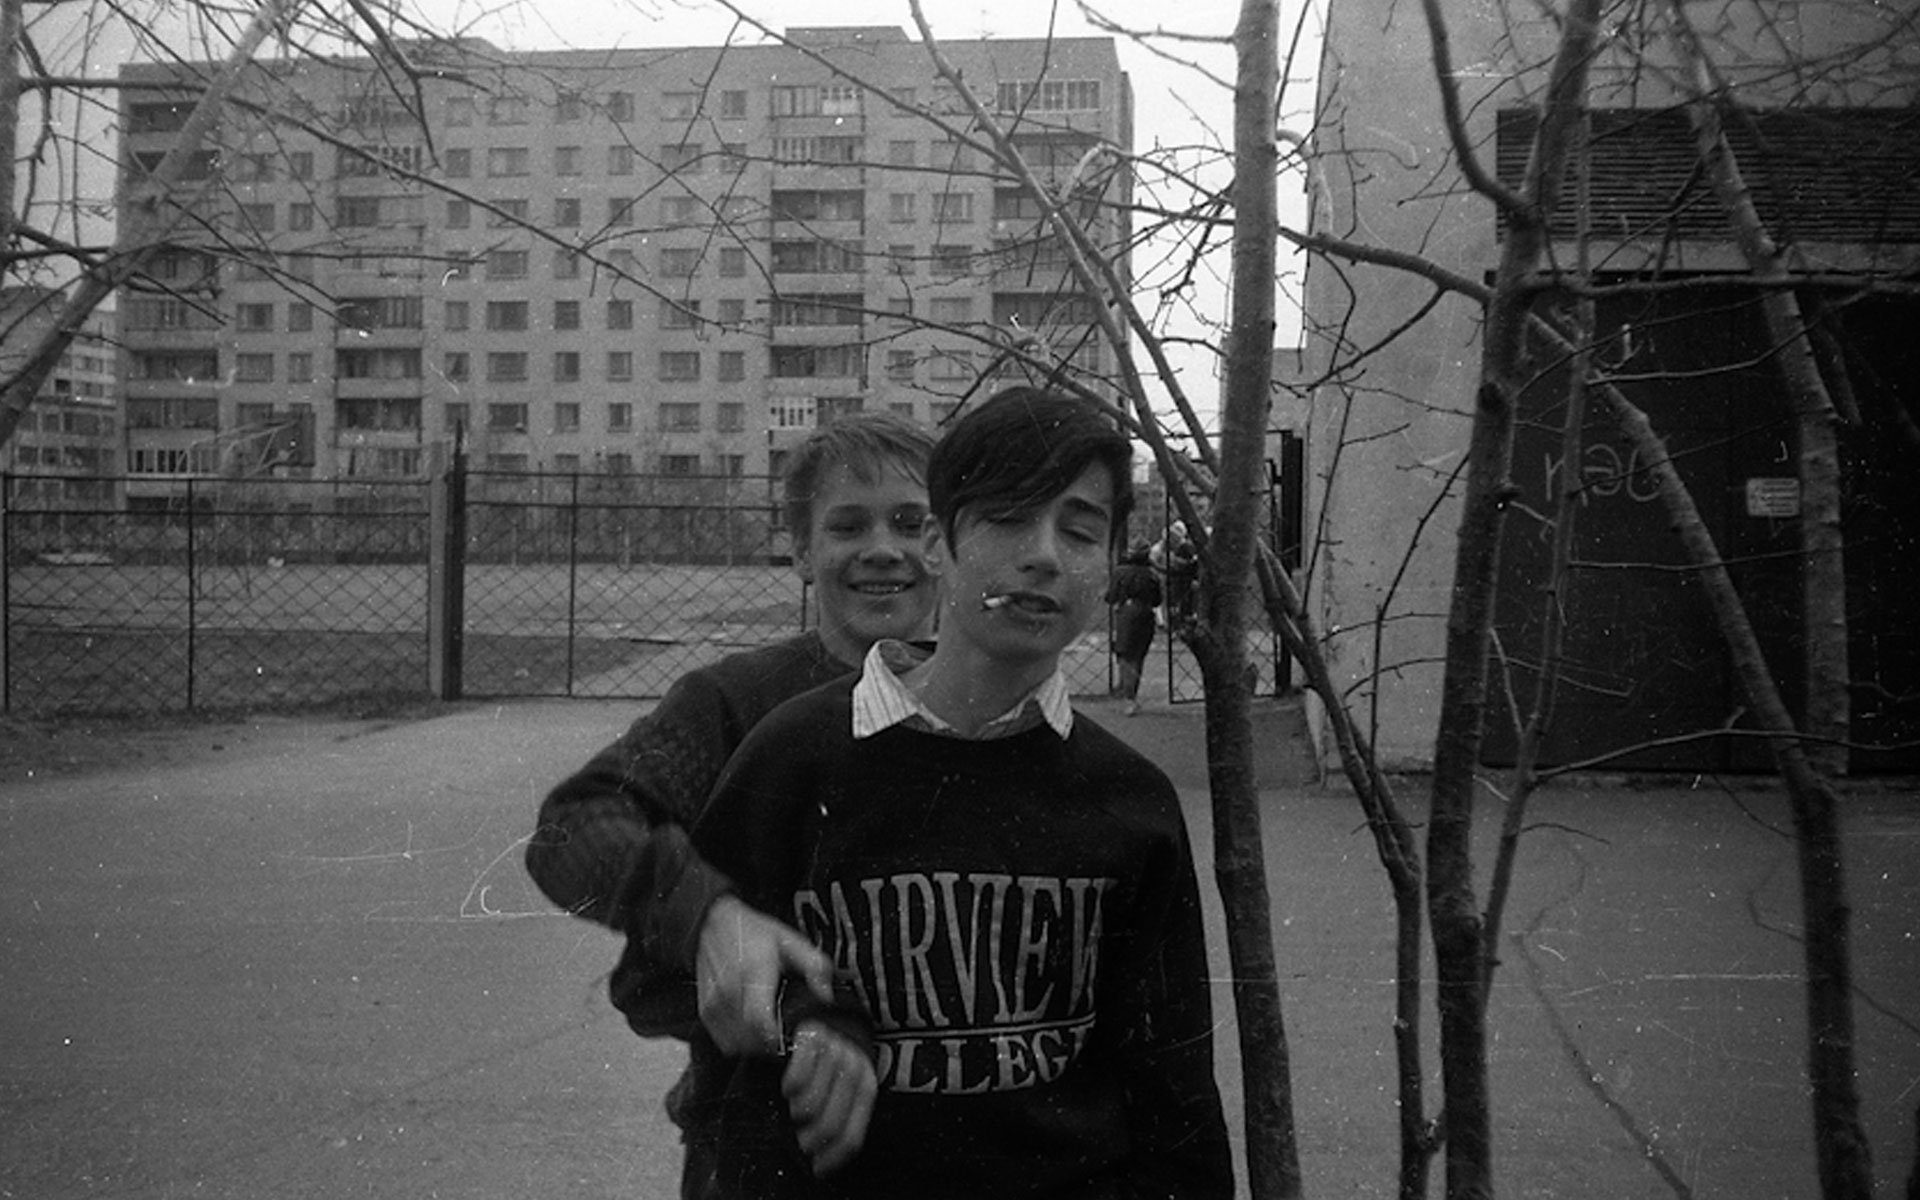 Rare 90s photos capture the lives of the young and restless in an Estonian border-town